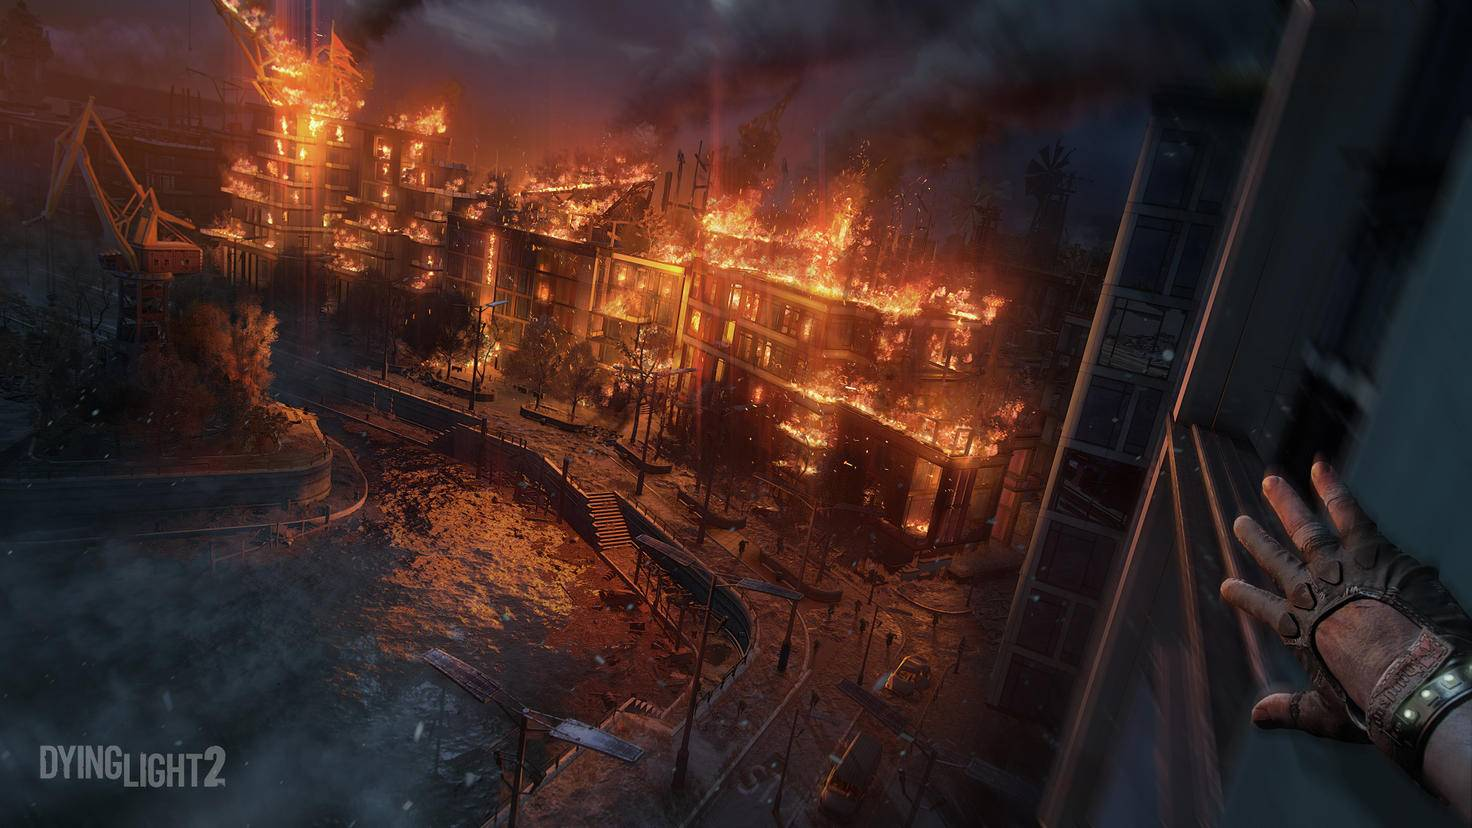 dying-light-2-feuer